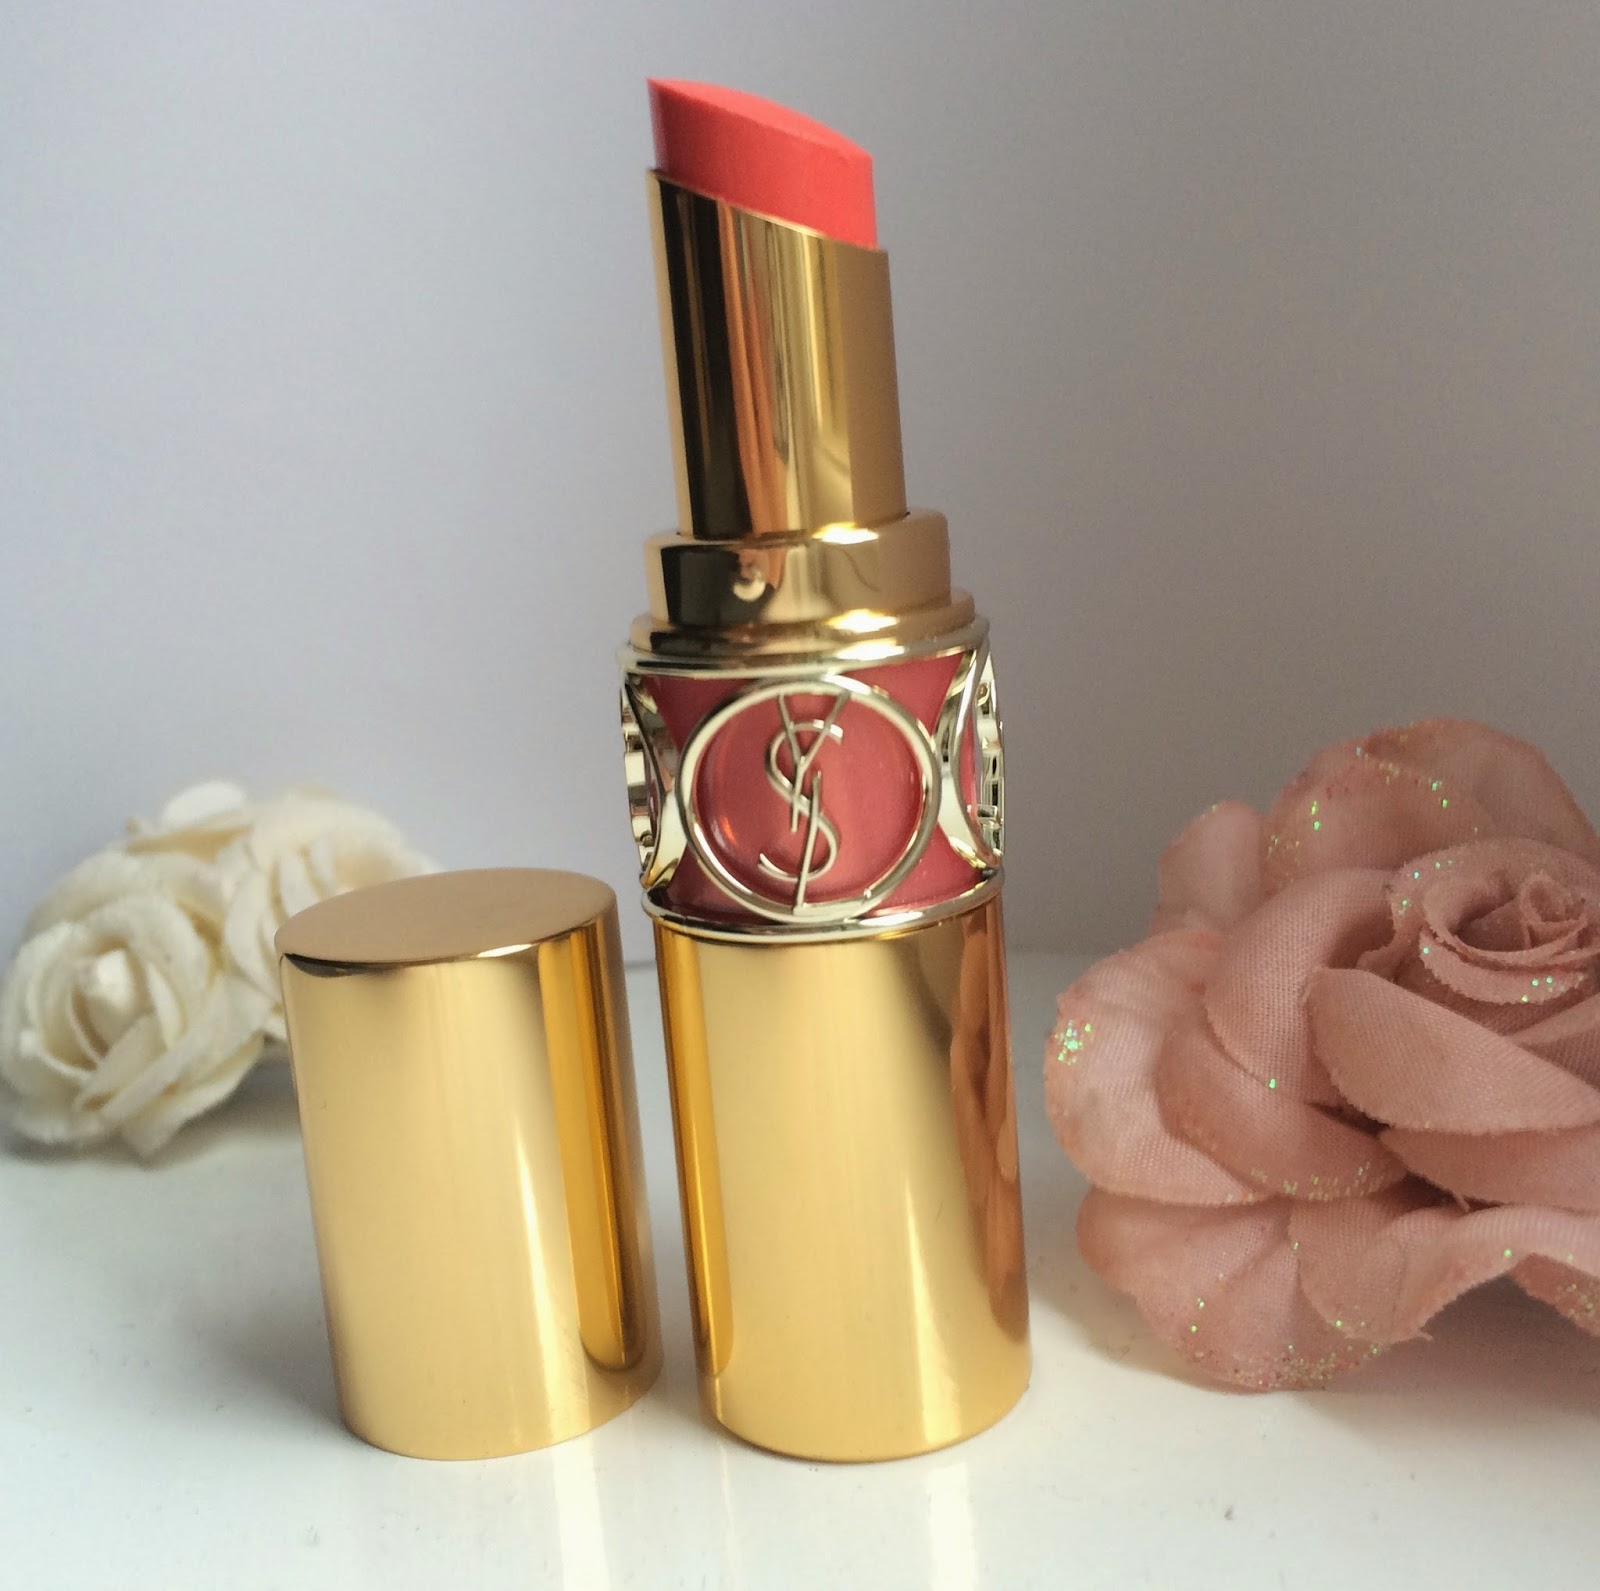 ysl-Rouge-Volupte-Shine-lipstick-15-Corail-Intuitive-review